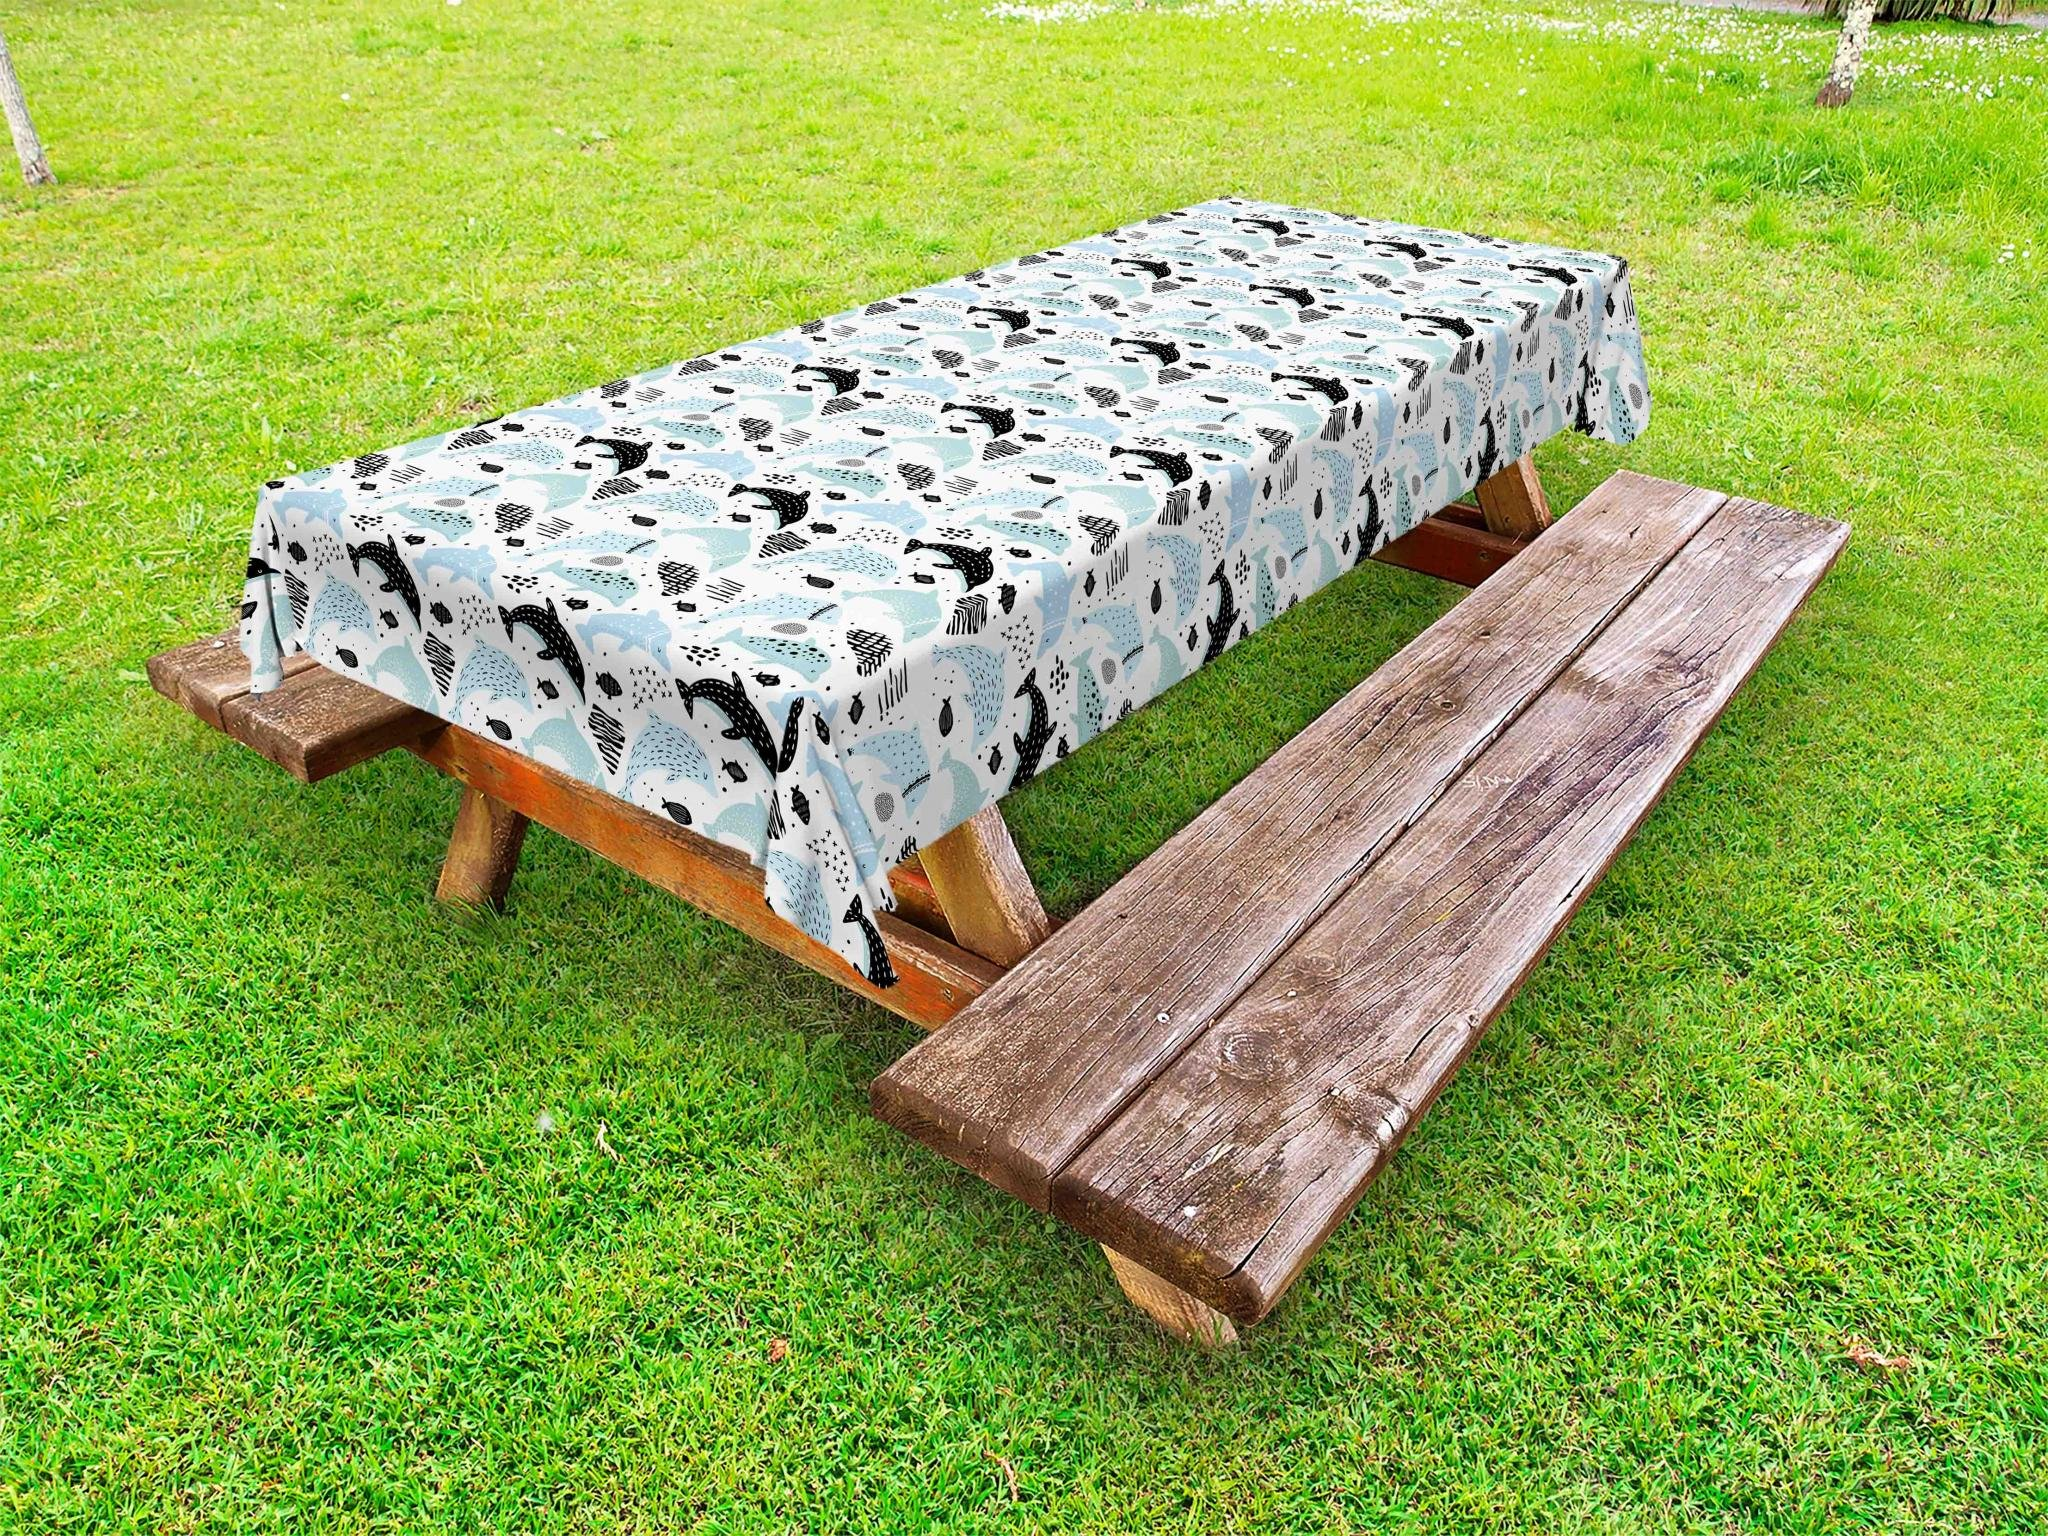 Lunarable Nautical Outdoor Tablecloth, Childish Style Swimming Dolphin and School of Fish Underwater Fauna, Decorative Washable Picnic Table Cloth, 58 X 120 inches, Pale Blue Black and White